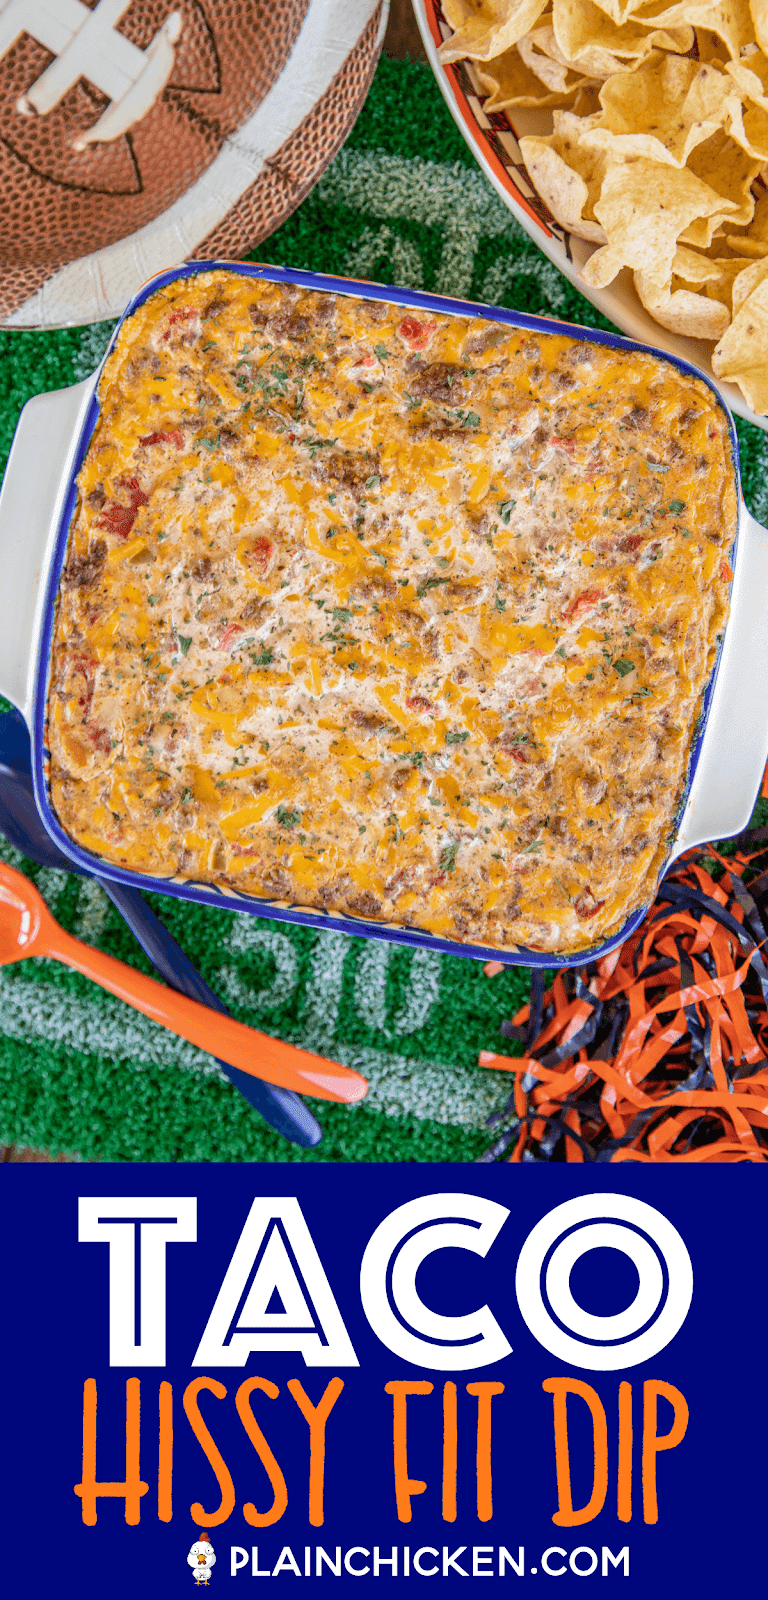 Taco Hissy Fit Dip Recipe You Will Definitely Throw A Hissy Fit If You Miss Out On This Dip Crazy Goo With Images Ground Beef Tacos Ground Beef Cream Cheese